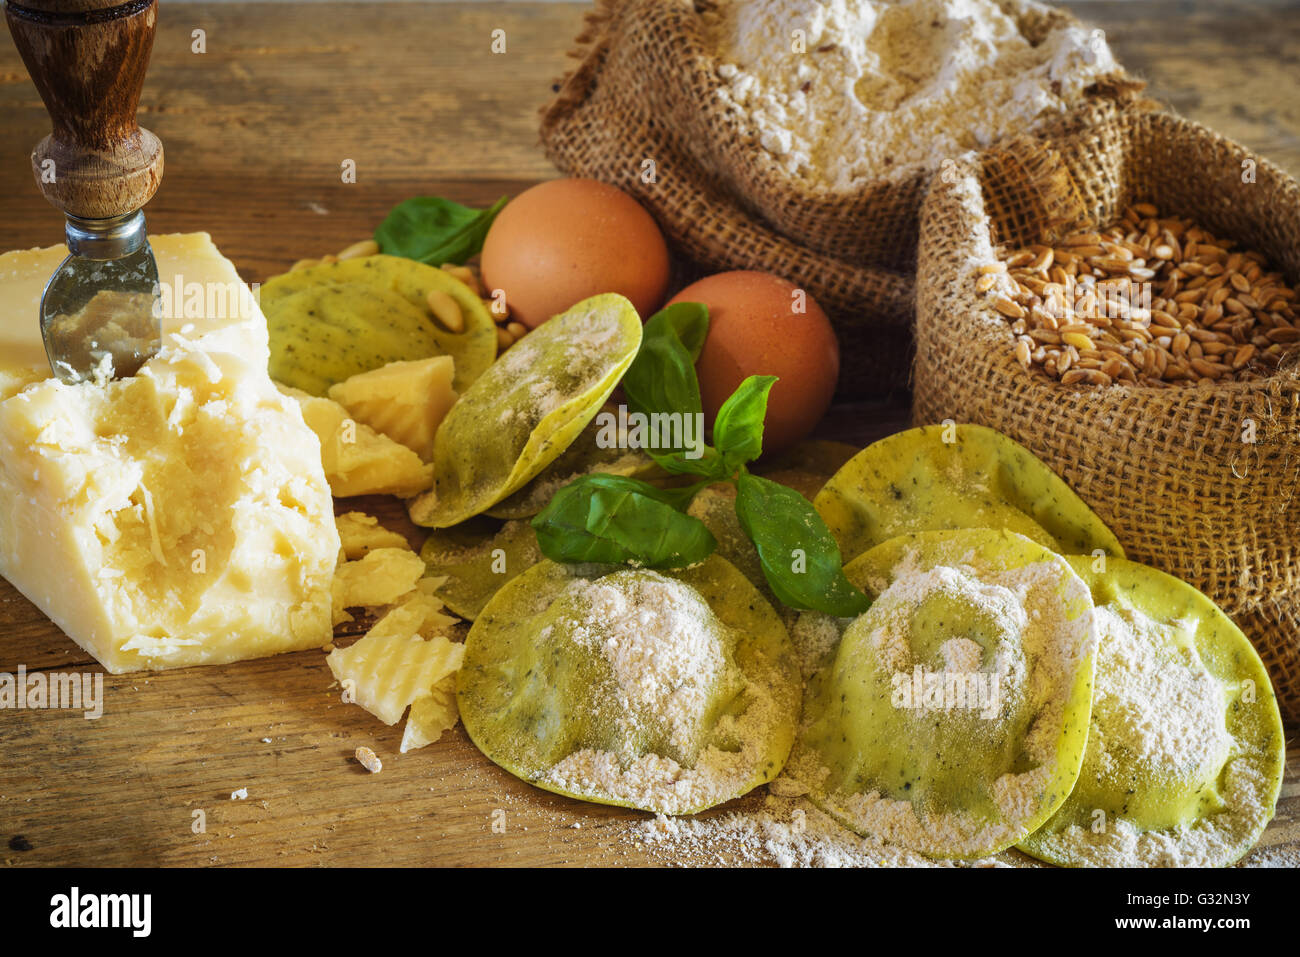 Dumplings / ravioli with cheese, basil and pine nuts, pesto. Pasta with integral flour. Stock Photo